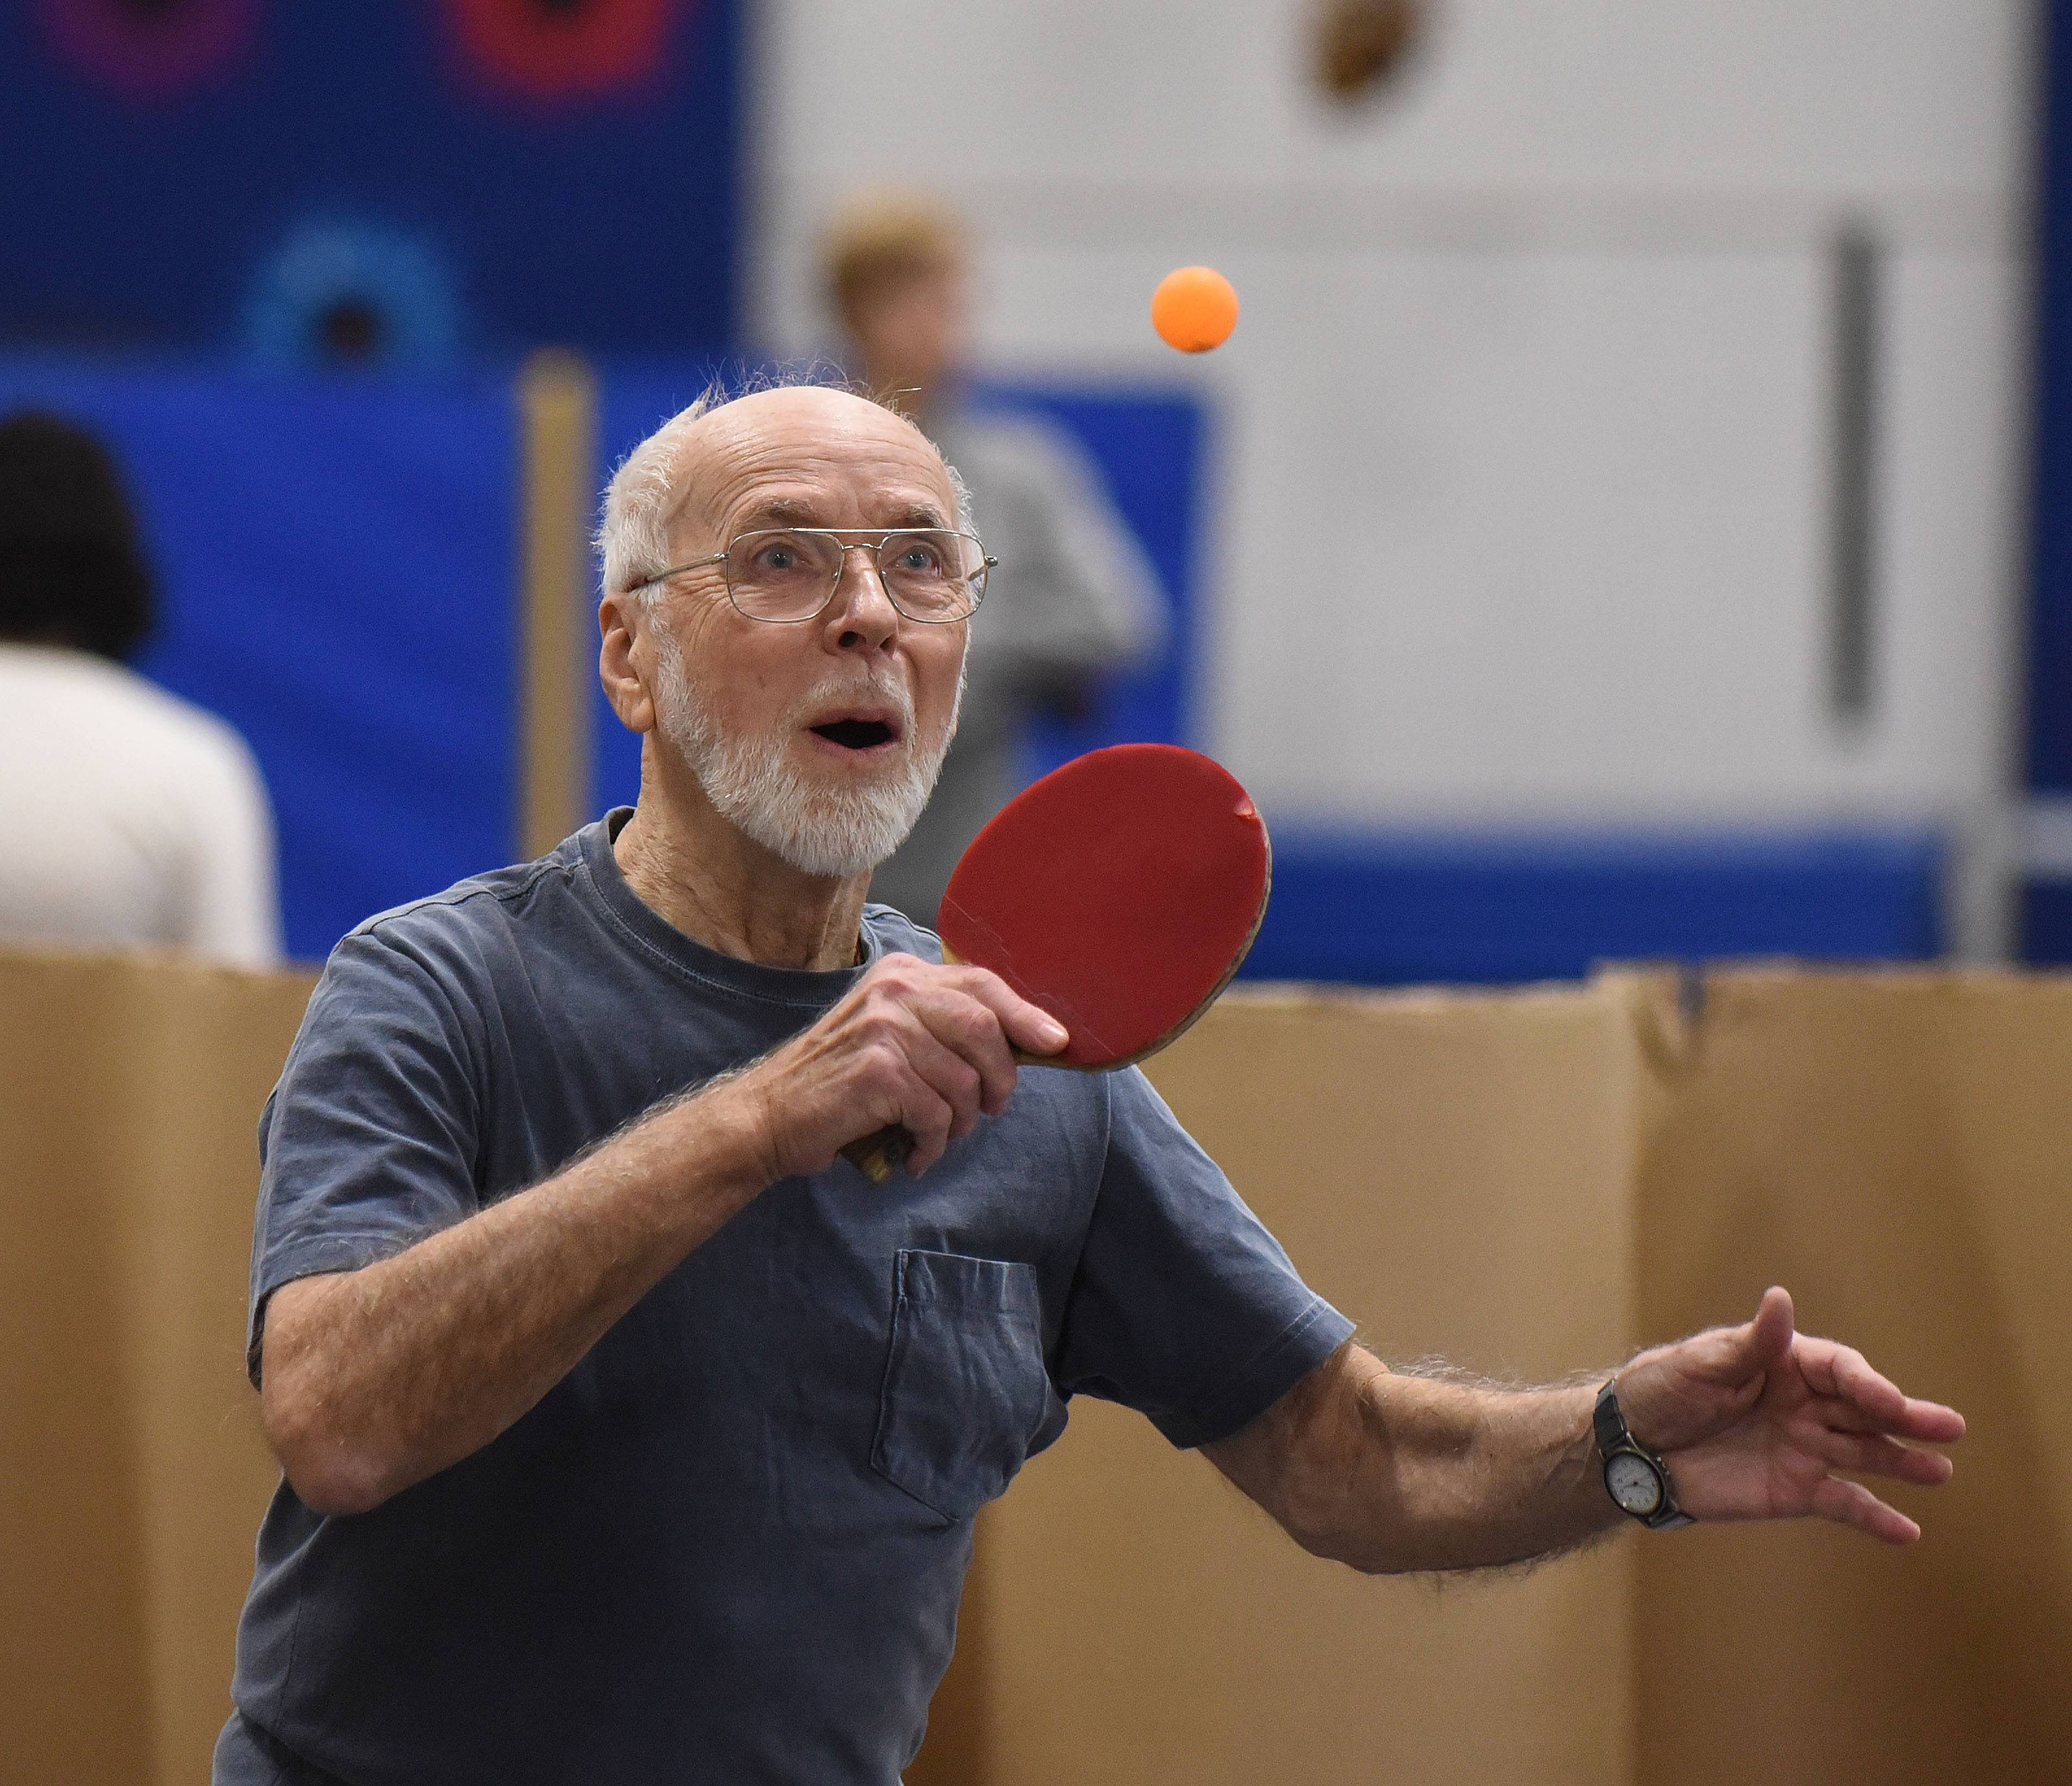 Gene Bender of Wheaton took part in Naperville's annual Table Tennis Tournament Saturday. The event was co-sponsored by Naperville Park District and the Naperville Table Tennis Club and has been going on for almost 30 years.